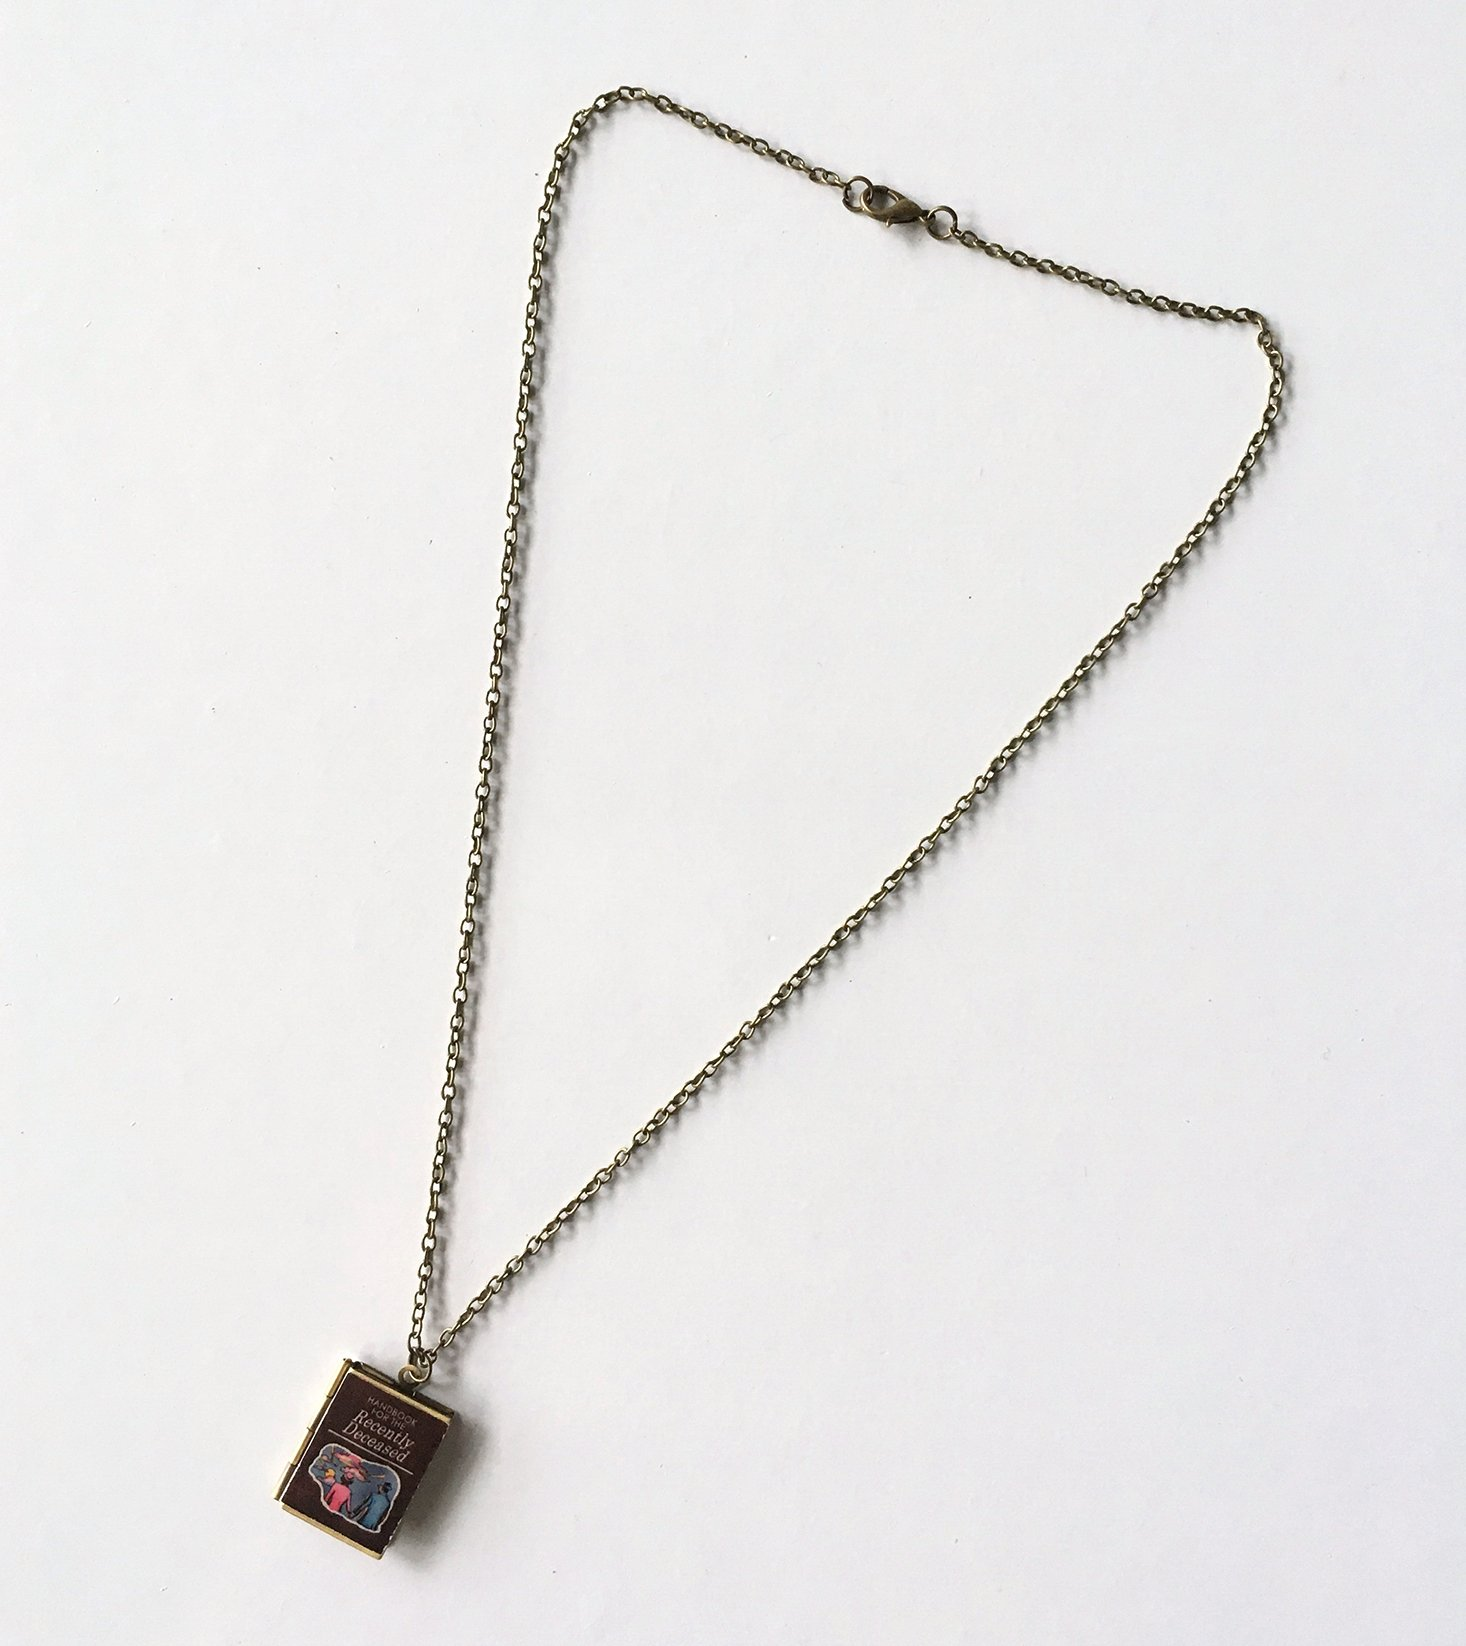 geek-chic-monthly-october-2016-necklace